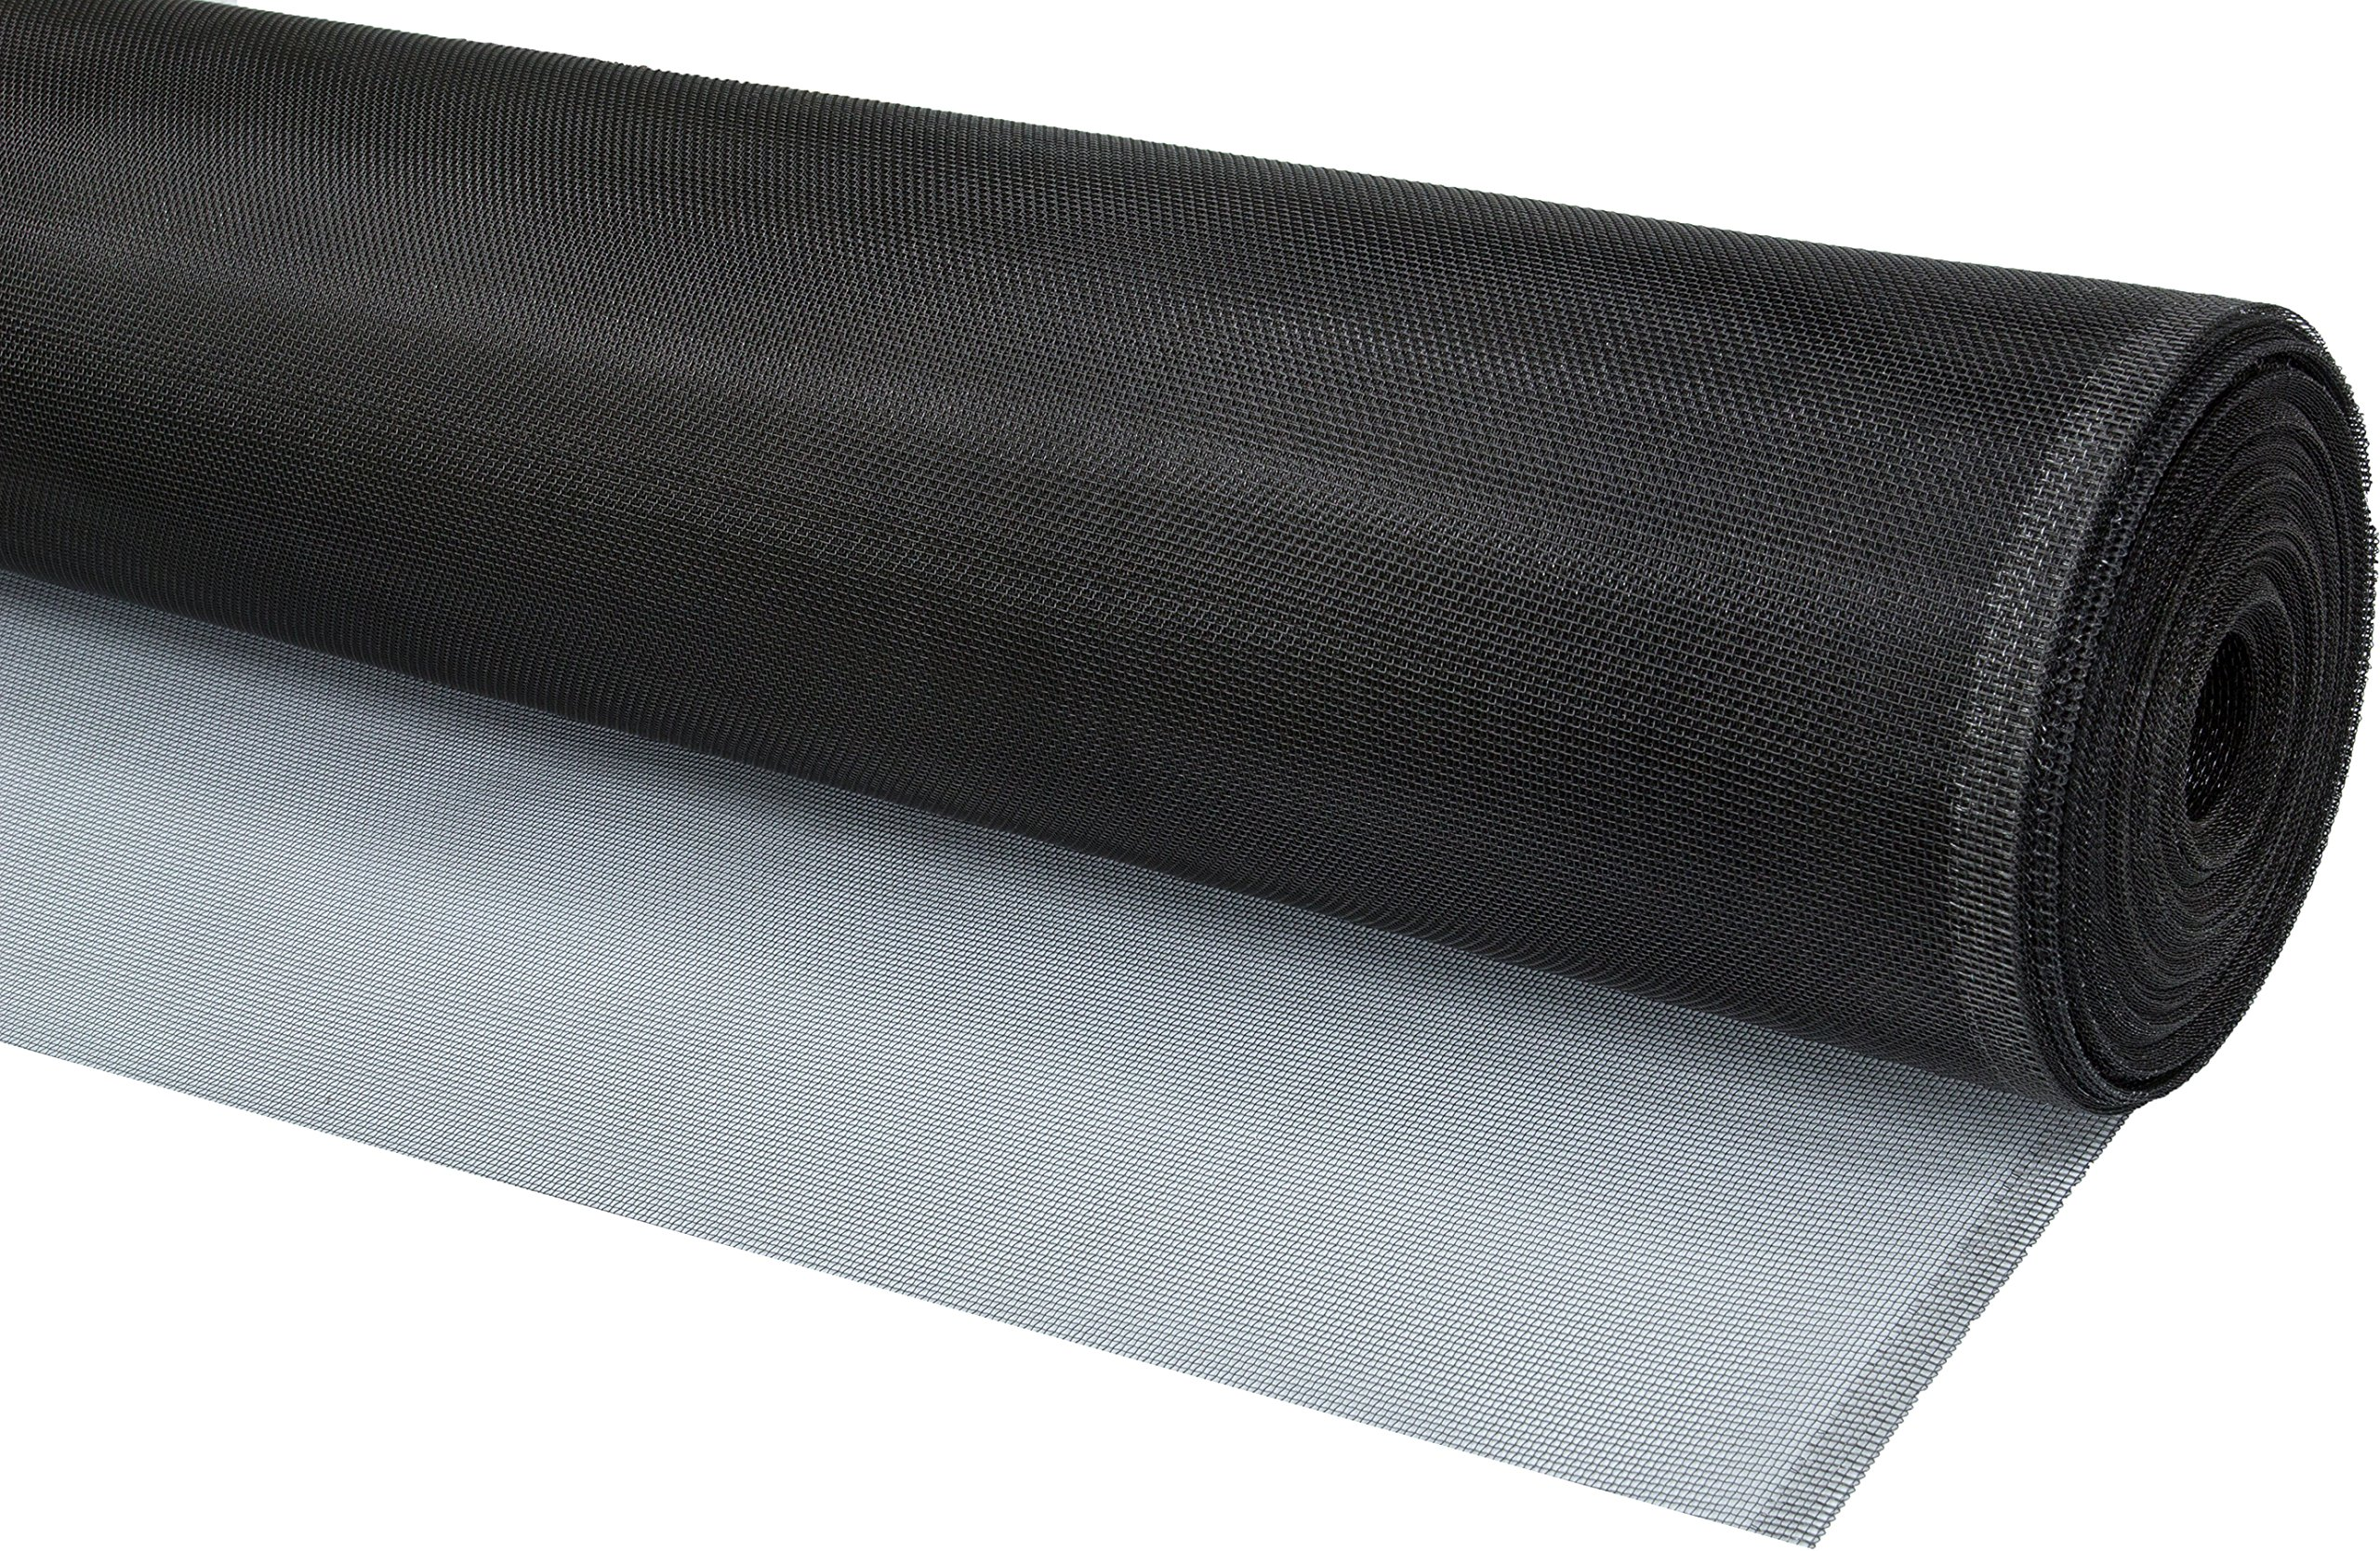 WJ Dennis & Company Climaloc SACL30100B Bulk Roll of Strong Durable Aluminum Replacement Screen for Professionals, 30-Inch x 100-Feet, Black